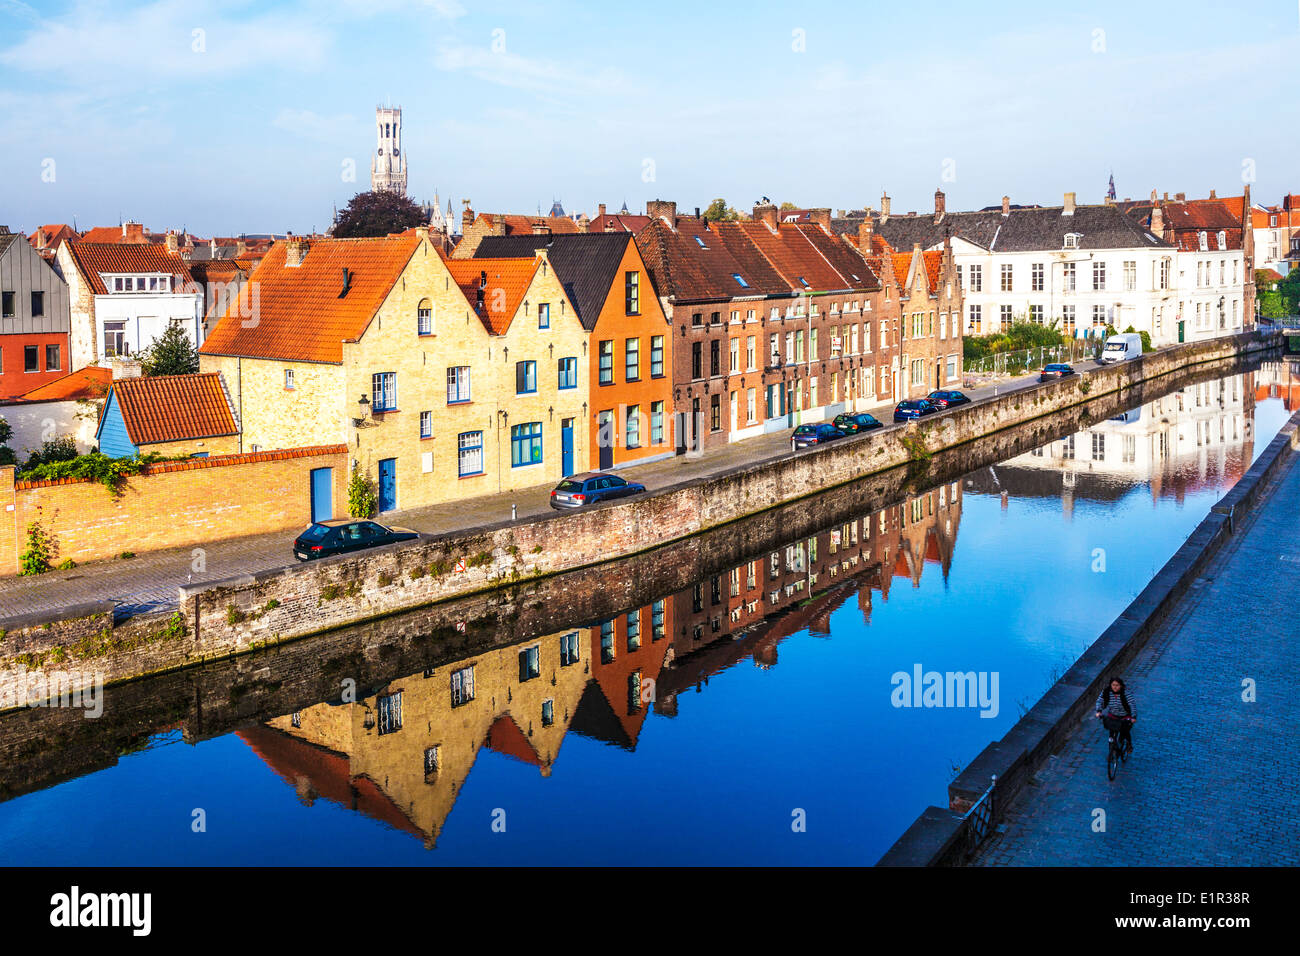 Medieval houses reflected in the canal along the Predikherenrei in Bruges, Belgium, with the Belfry tower in the distance. - Stock Image